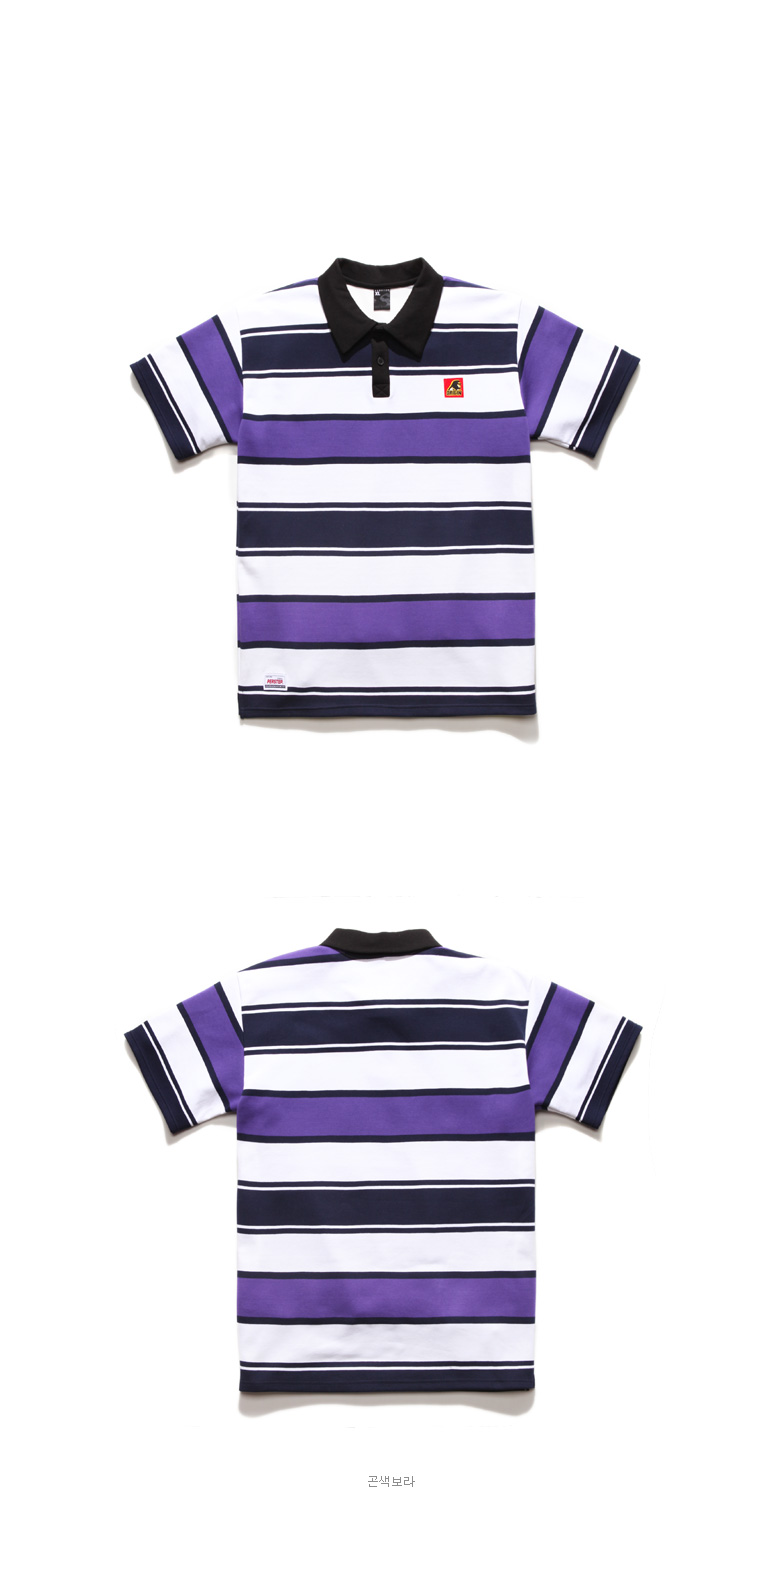 20180509_ps_huckle_tshirt_navypurple_uk_01.jpg